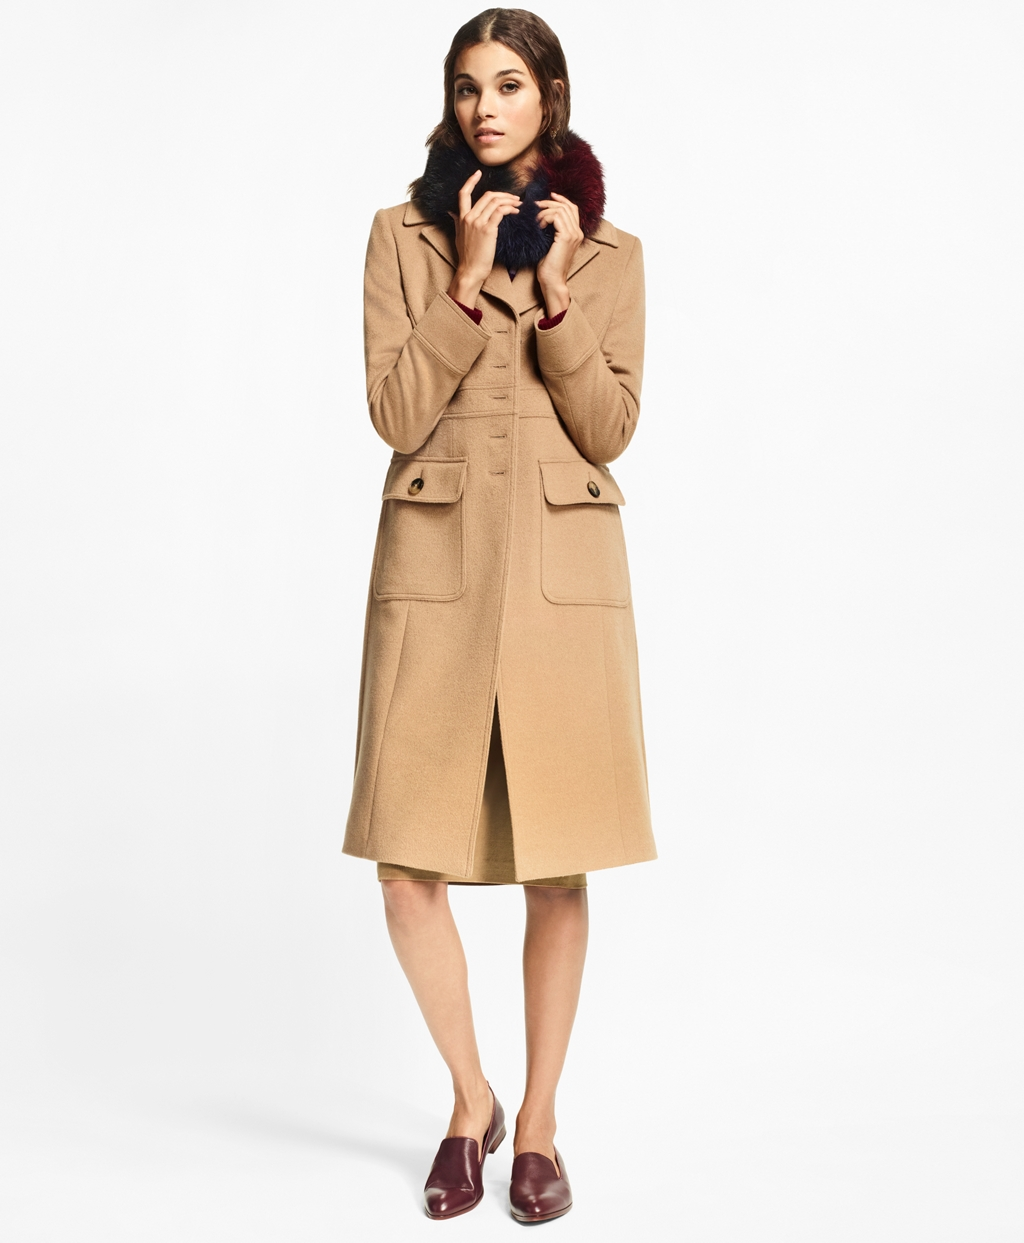 1930s Style Clothing and Fashion Brooks Brothers Womens Camel Hair Polo Coat $698.60 AT vintagedancer.com